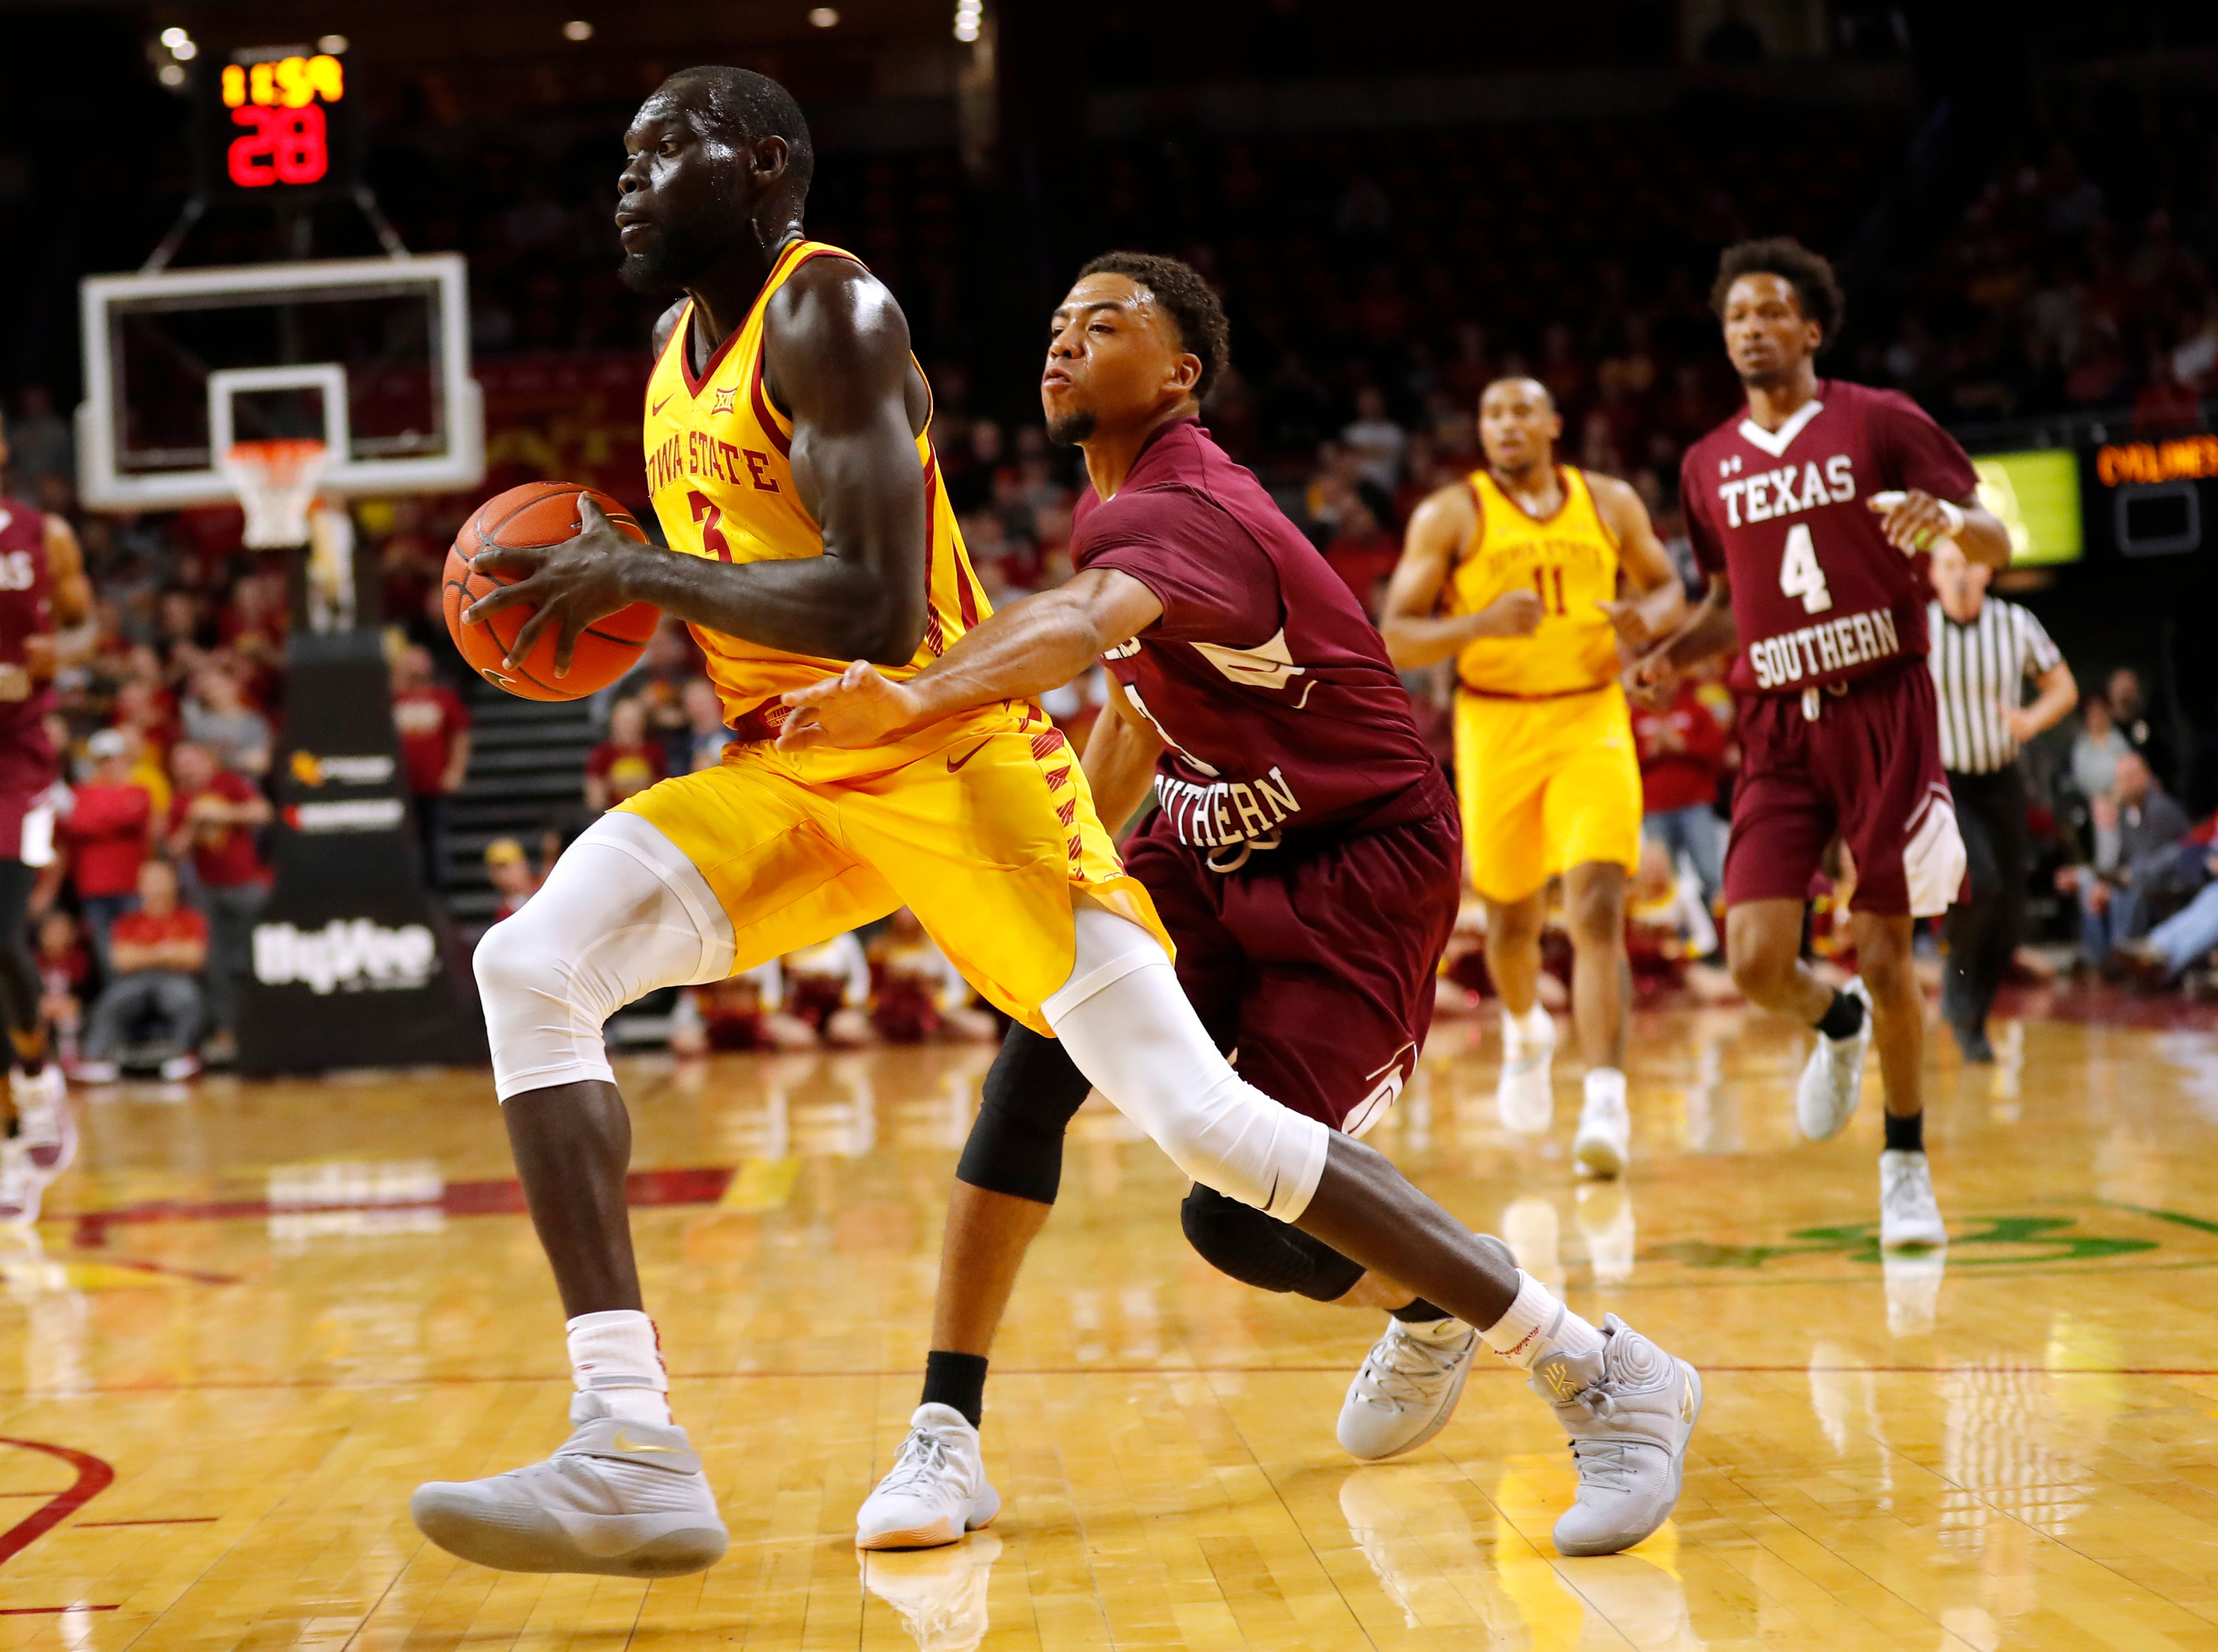 Iowa State guard Marial Shayok, left, drives to the basket past Texas Southern guard Jalyn Patterson during the first half of an NCAA college basketball game, Monday, Nov. 12, 2018, in Ames, Iowa.